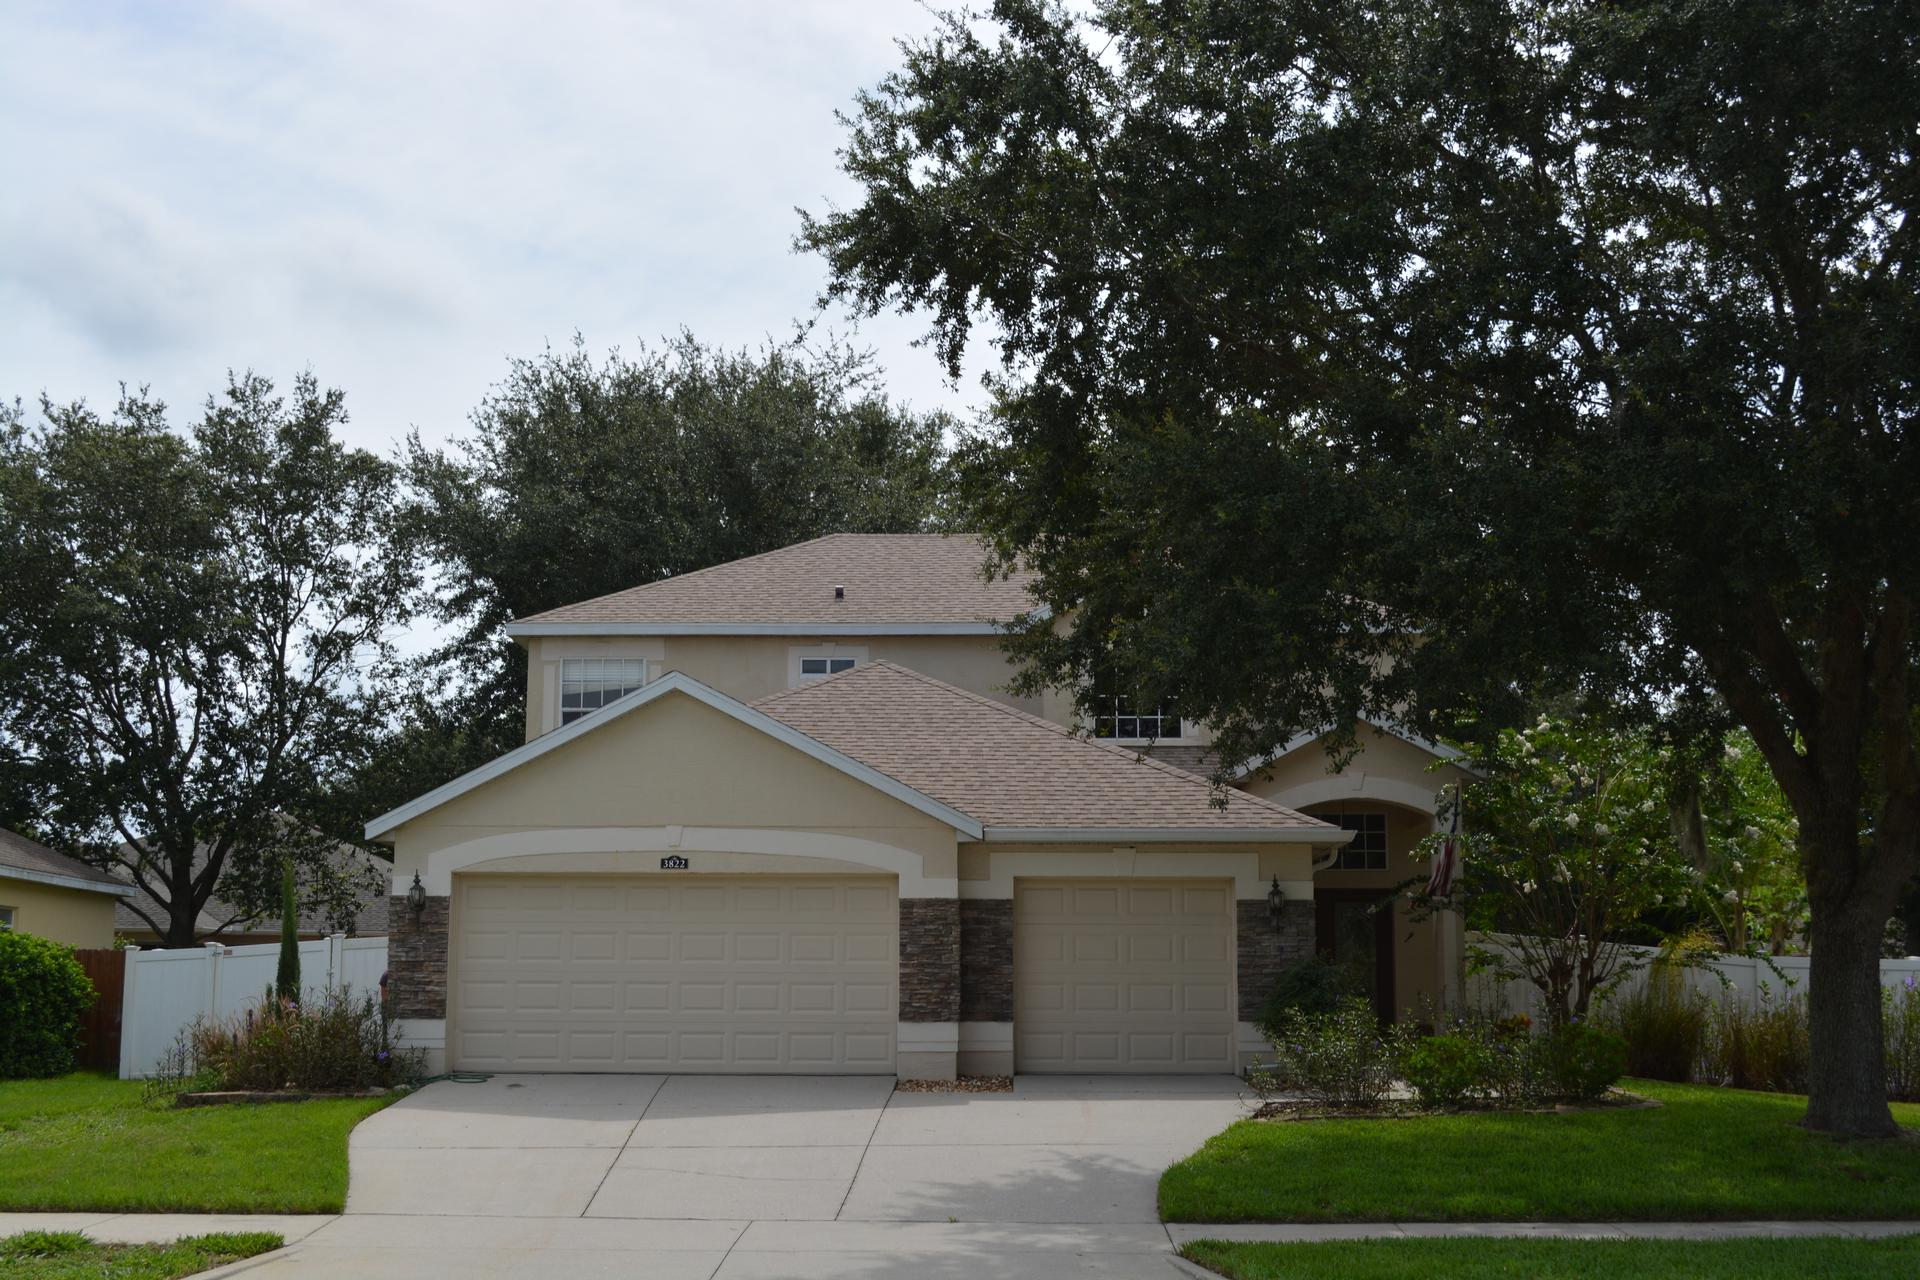 Photo of property: 3822 Fallscrest Circle, Clermont, FL 34711